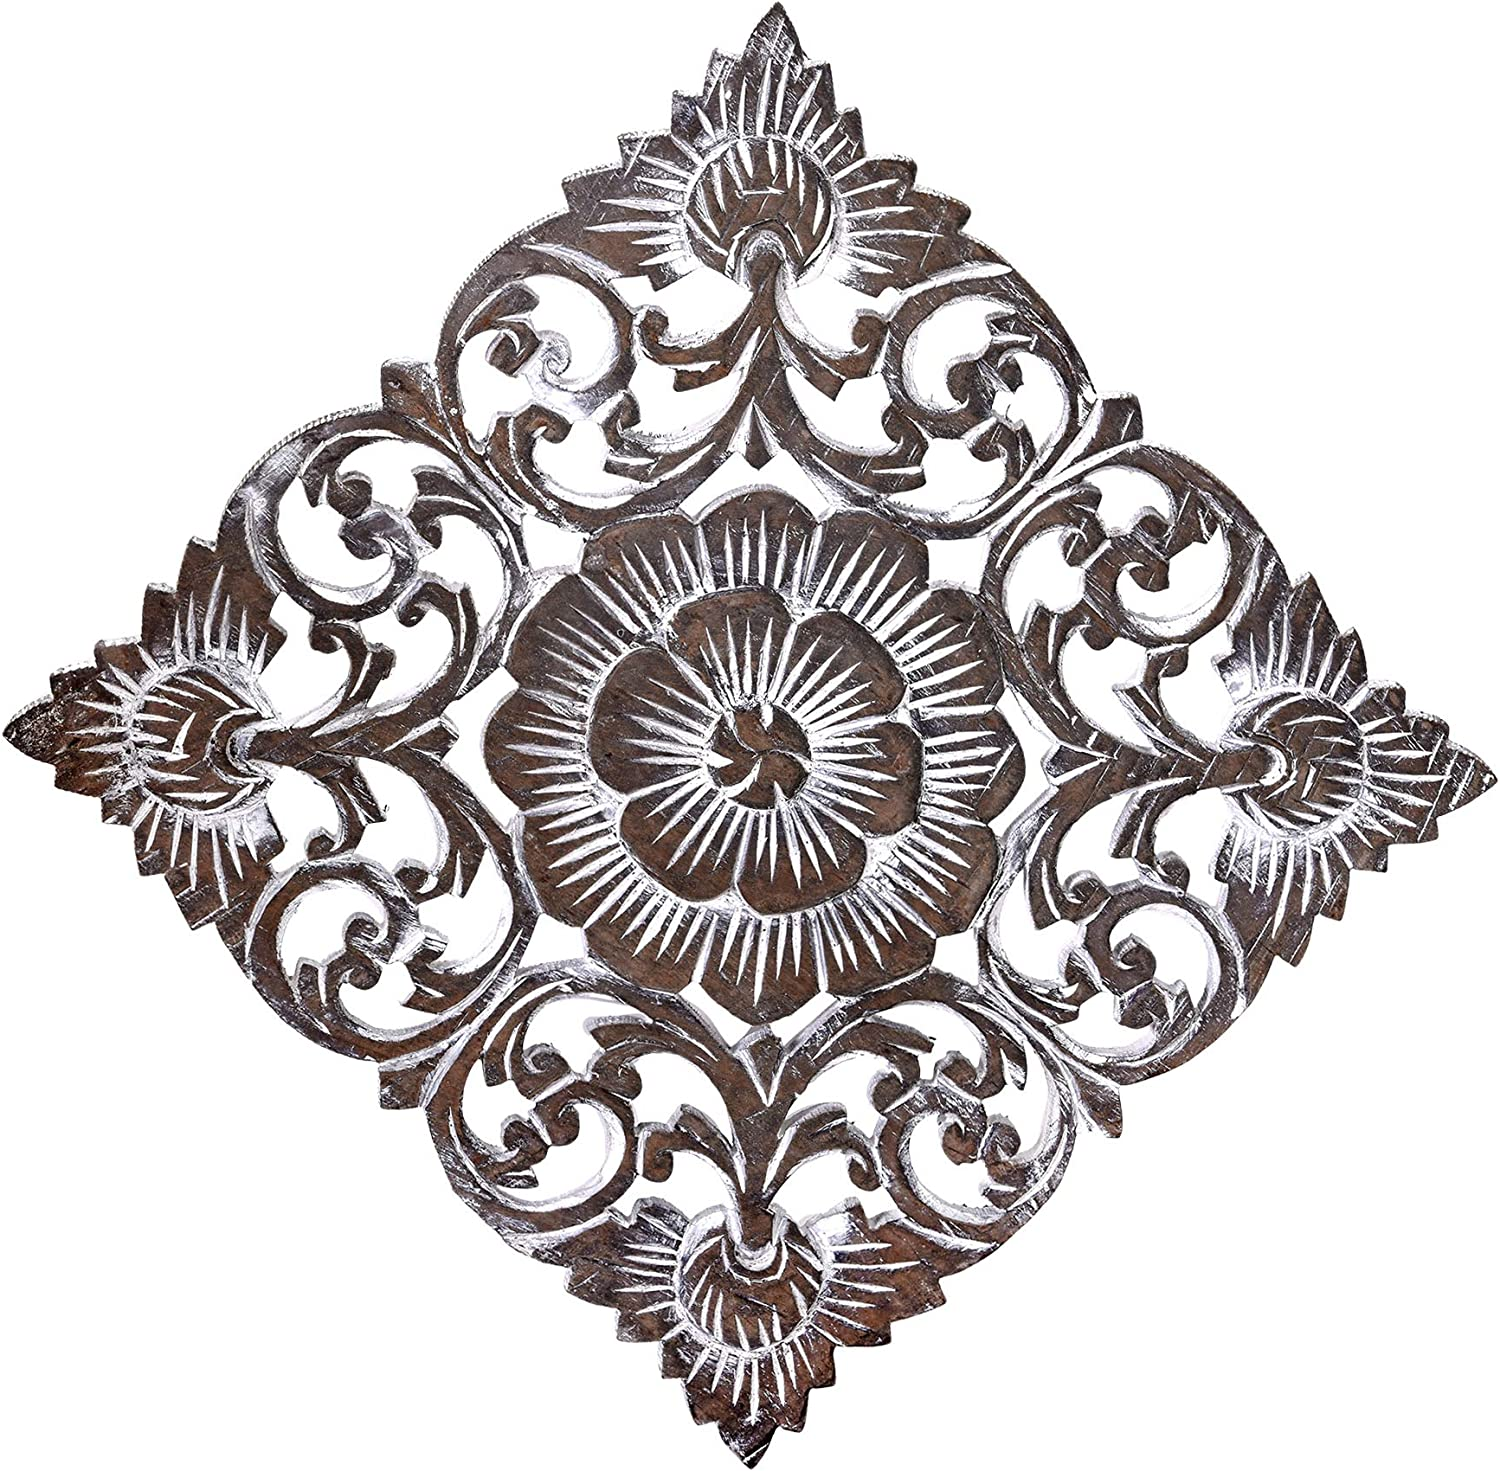 Tropical Magnolia Flower Two-Tone Hand Carved Teak Wood Wall Art 12 inches Brown-White